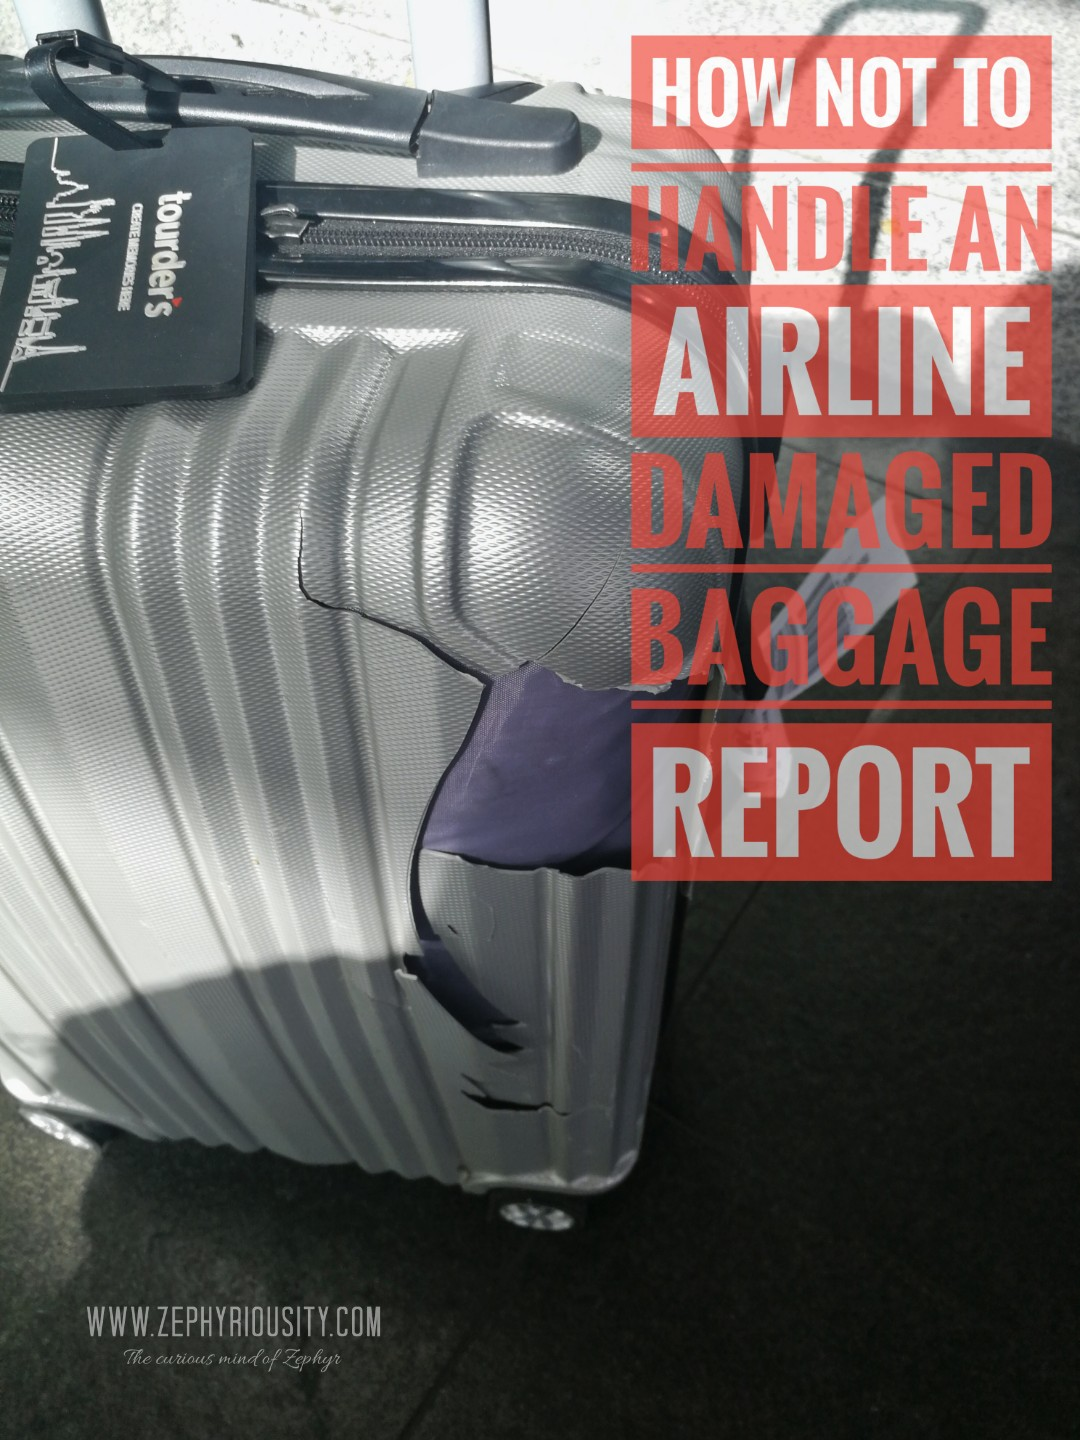 How NOT to Handle an Airline Damaged Baggage Report